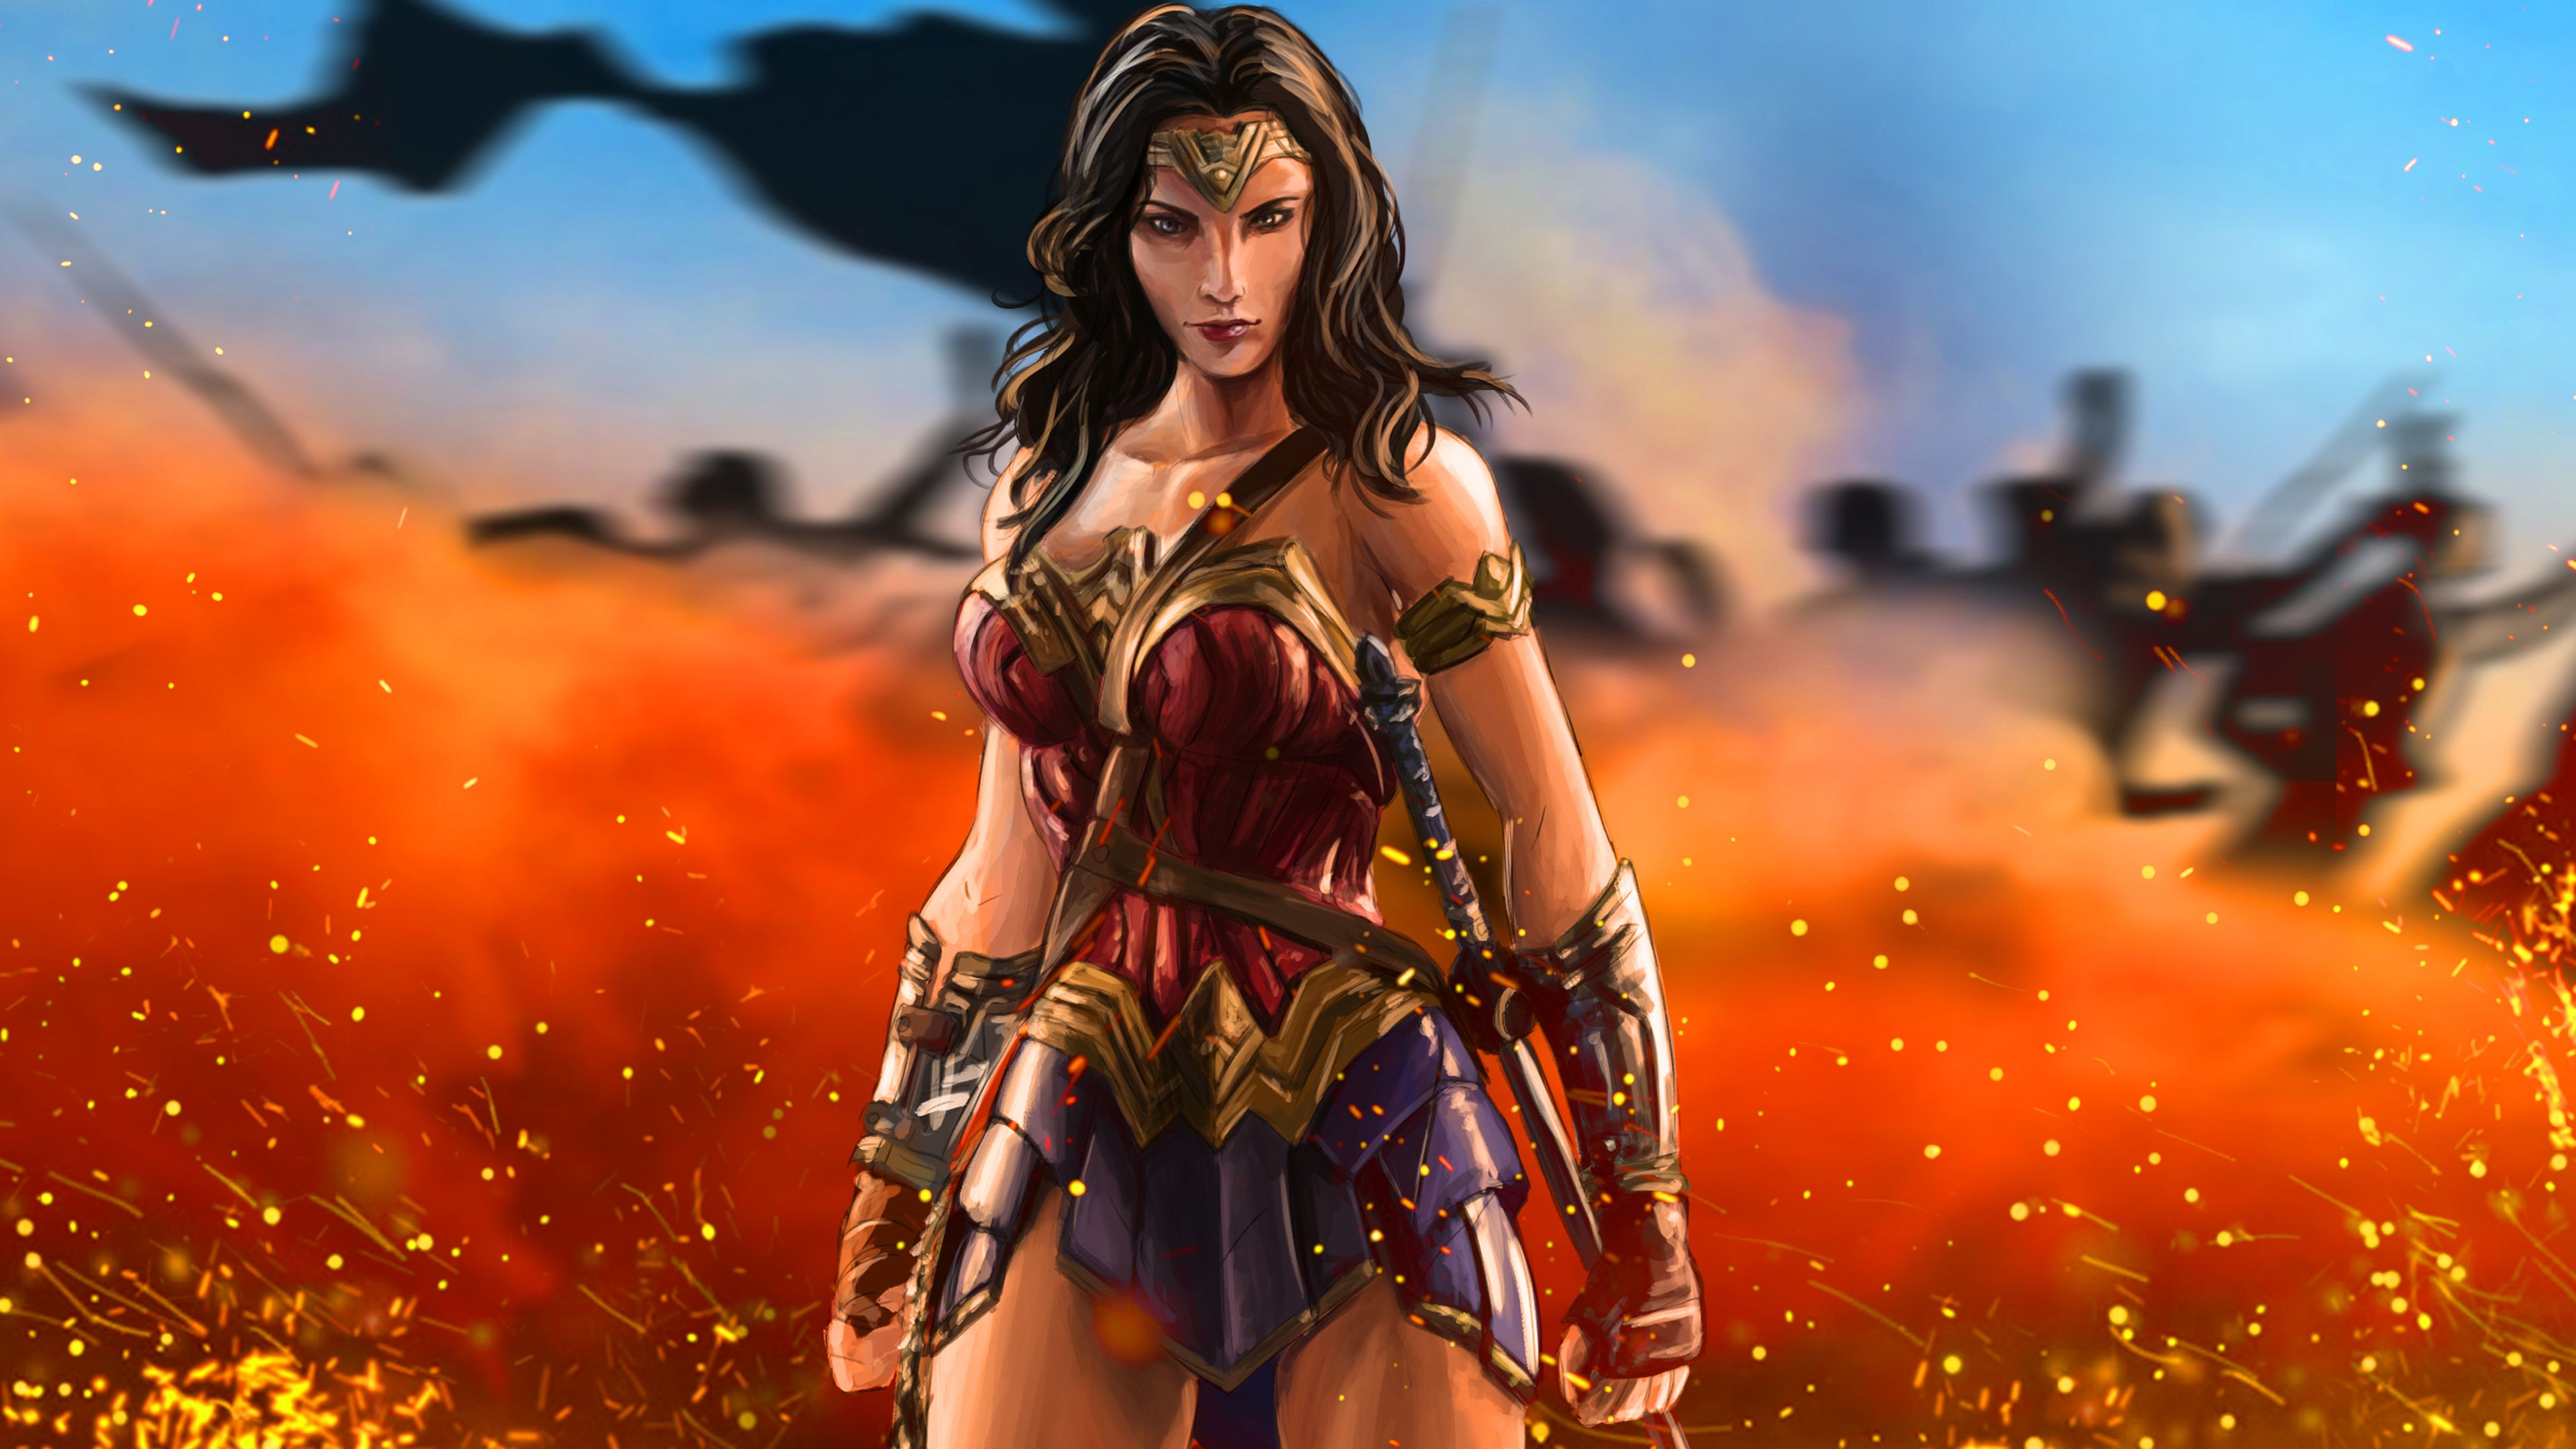 Wonder Woman Warrior Artwork 5k Wonder Woman Wallpapers Warrior Wallpapers Superheroes Wallpapers Hd Wallpapers D Warrior Woman Hero Wallpaper Wonder Woman